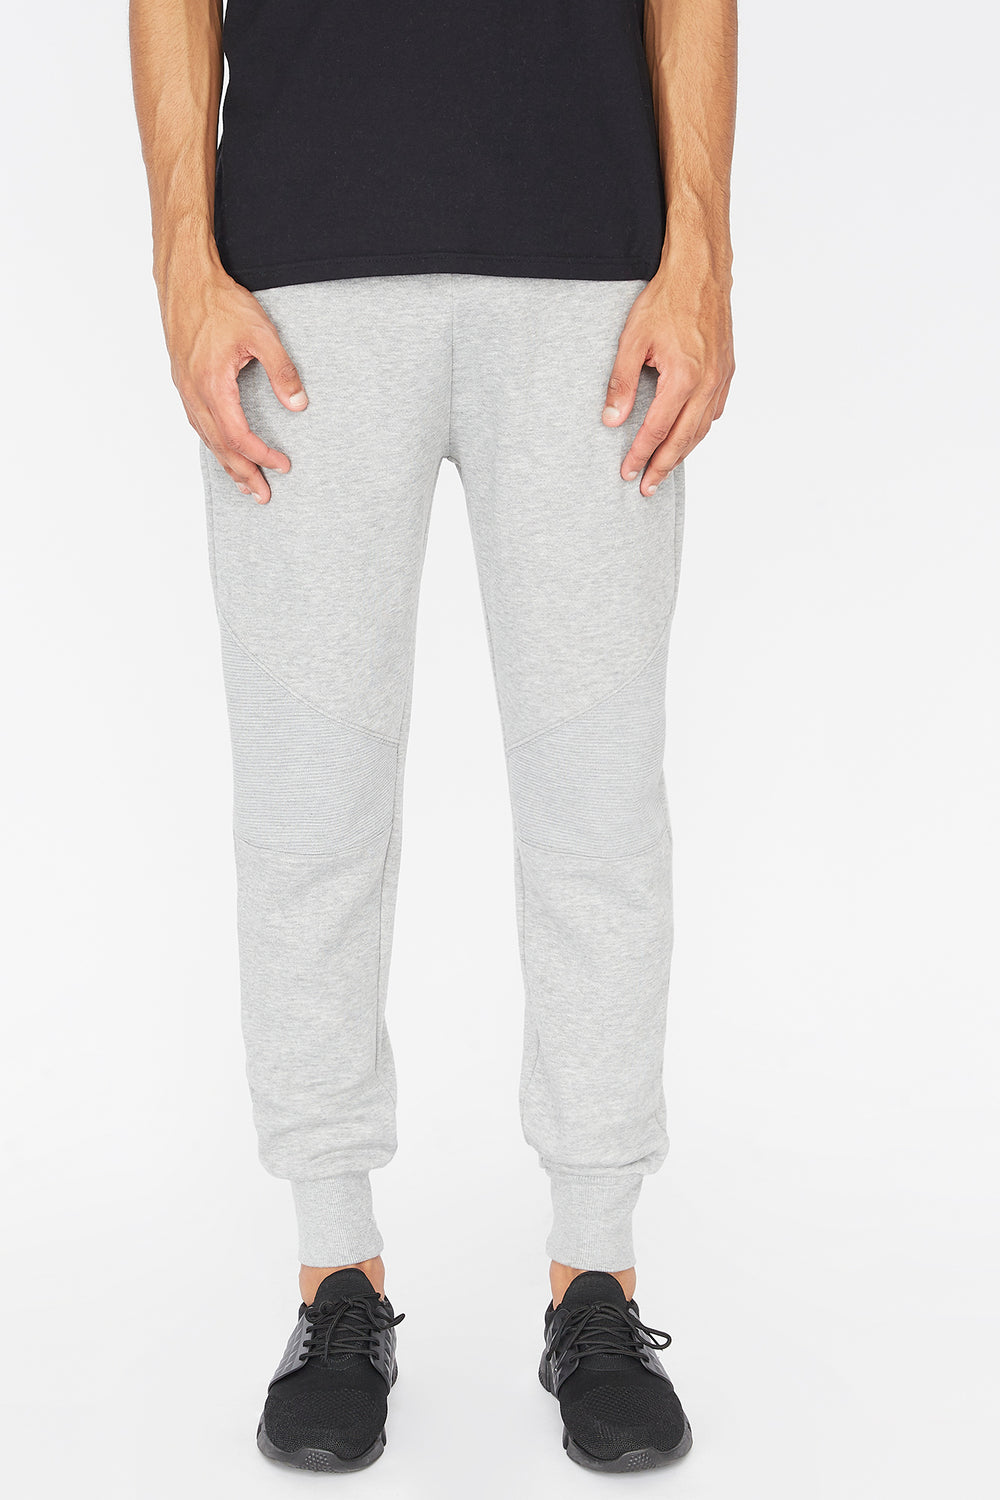 West49 Mens Solid Moto Jogger Heather Grey